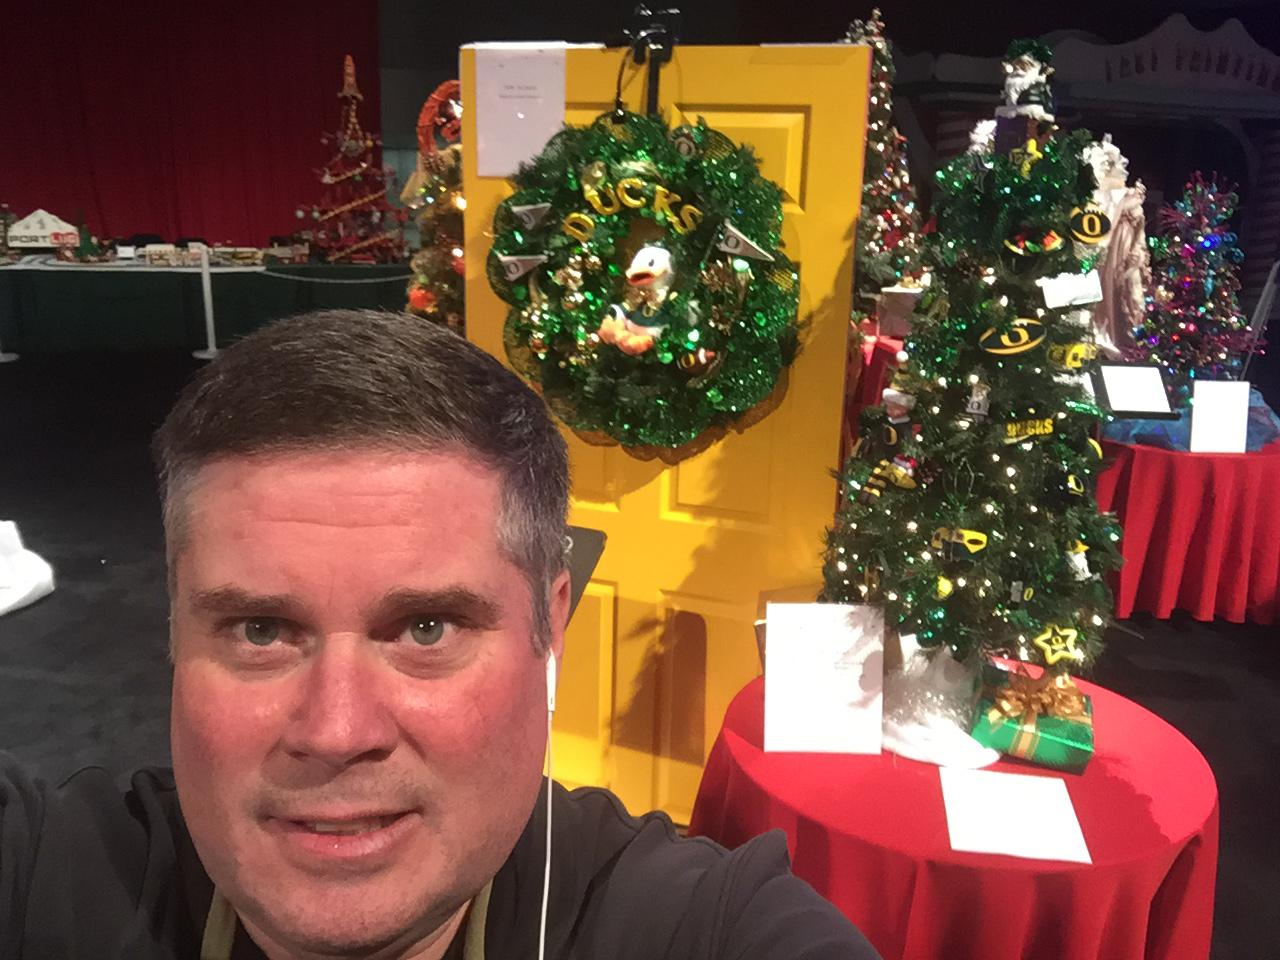 Photo Selfie: Sean Broderick/KATU News/Nov. 30, 2017